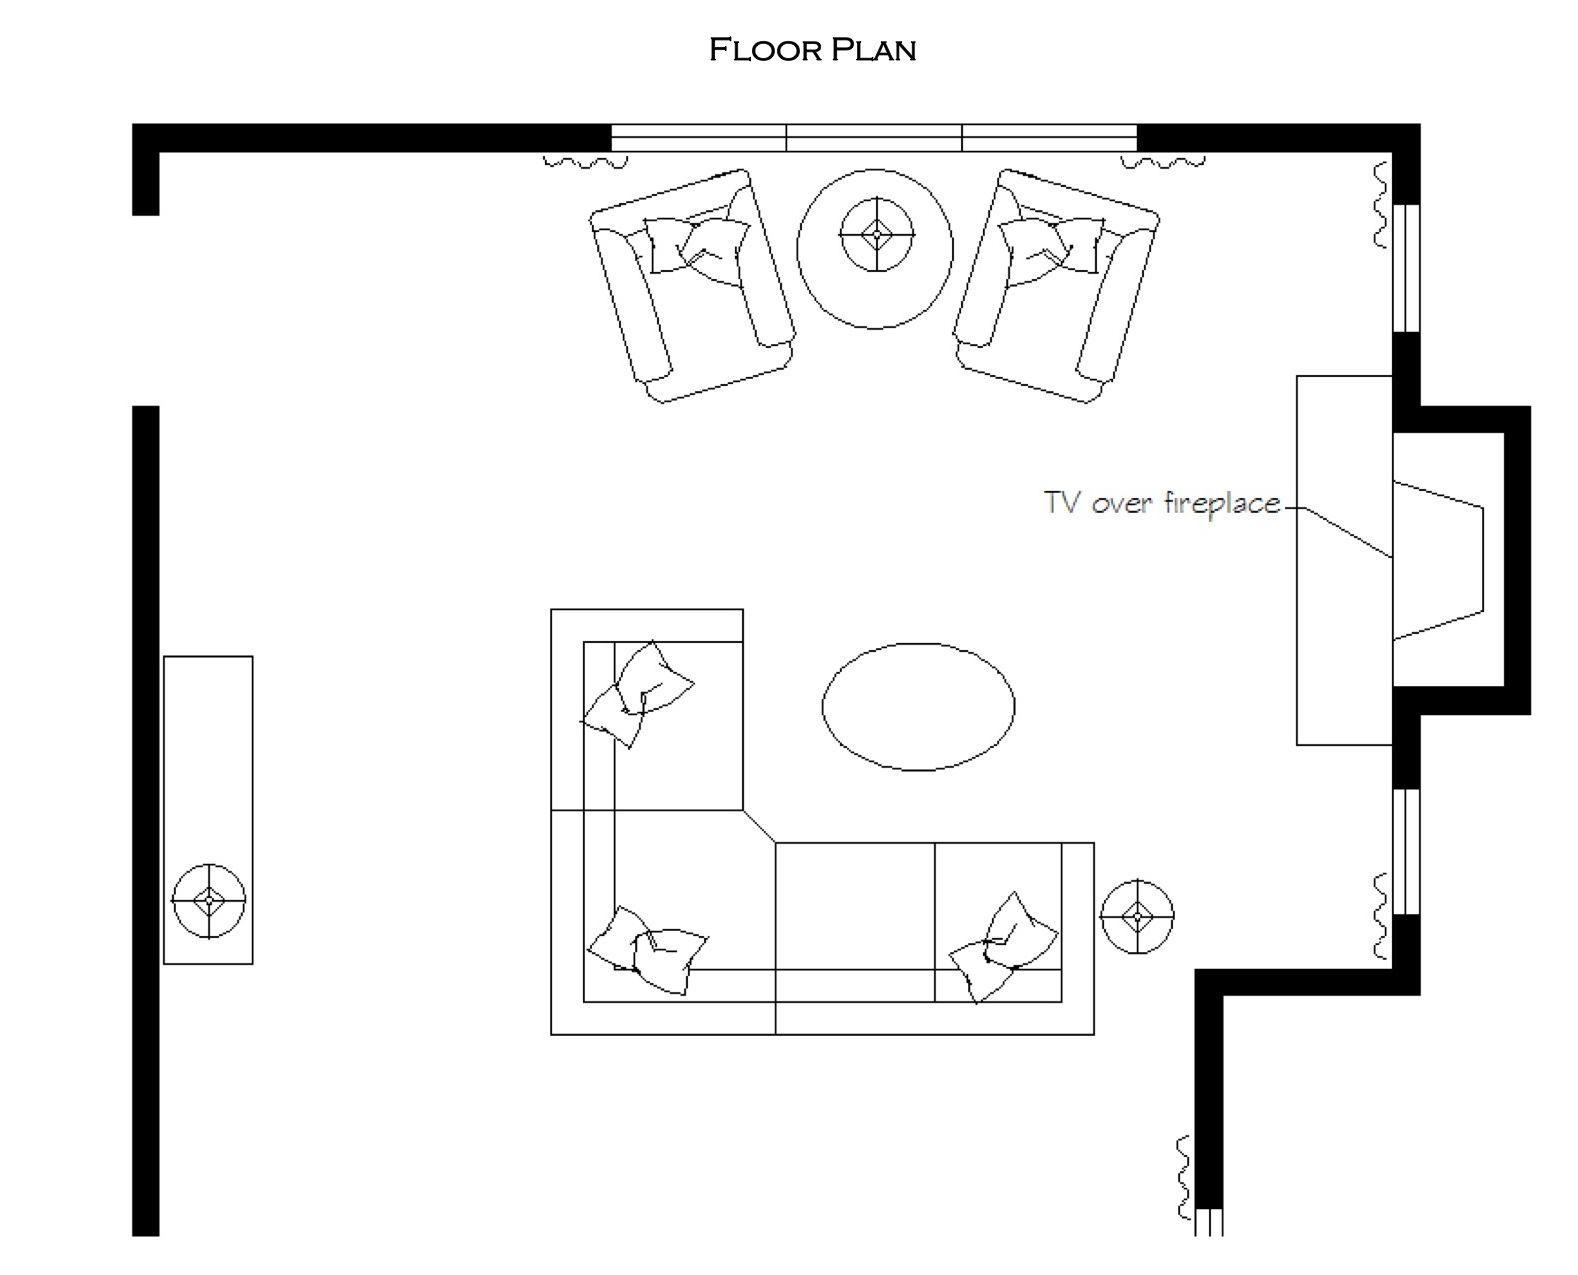 Living room floor plan sectional tv over fireplace for Living room layout with sectional